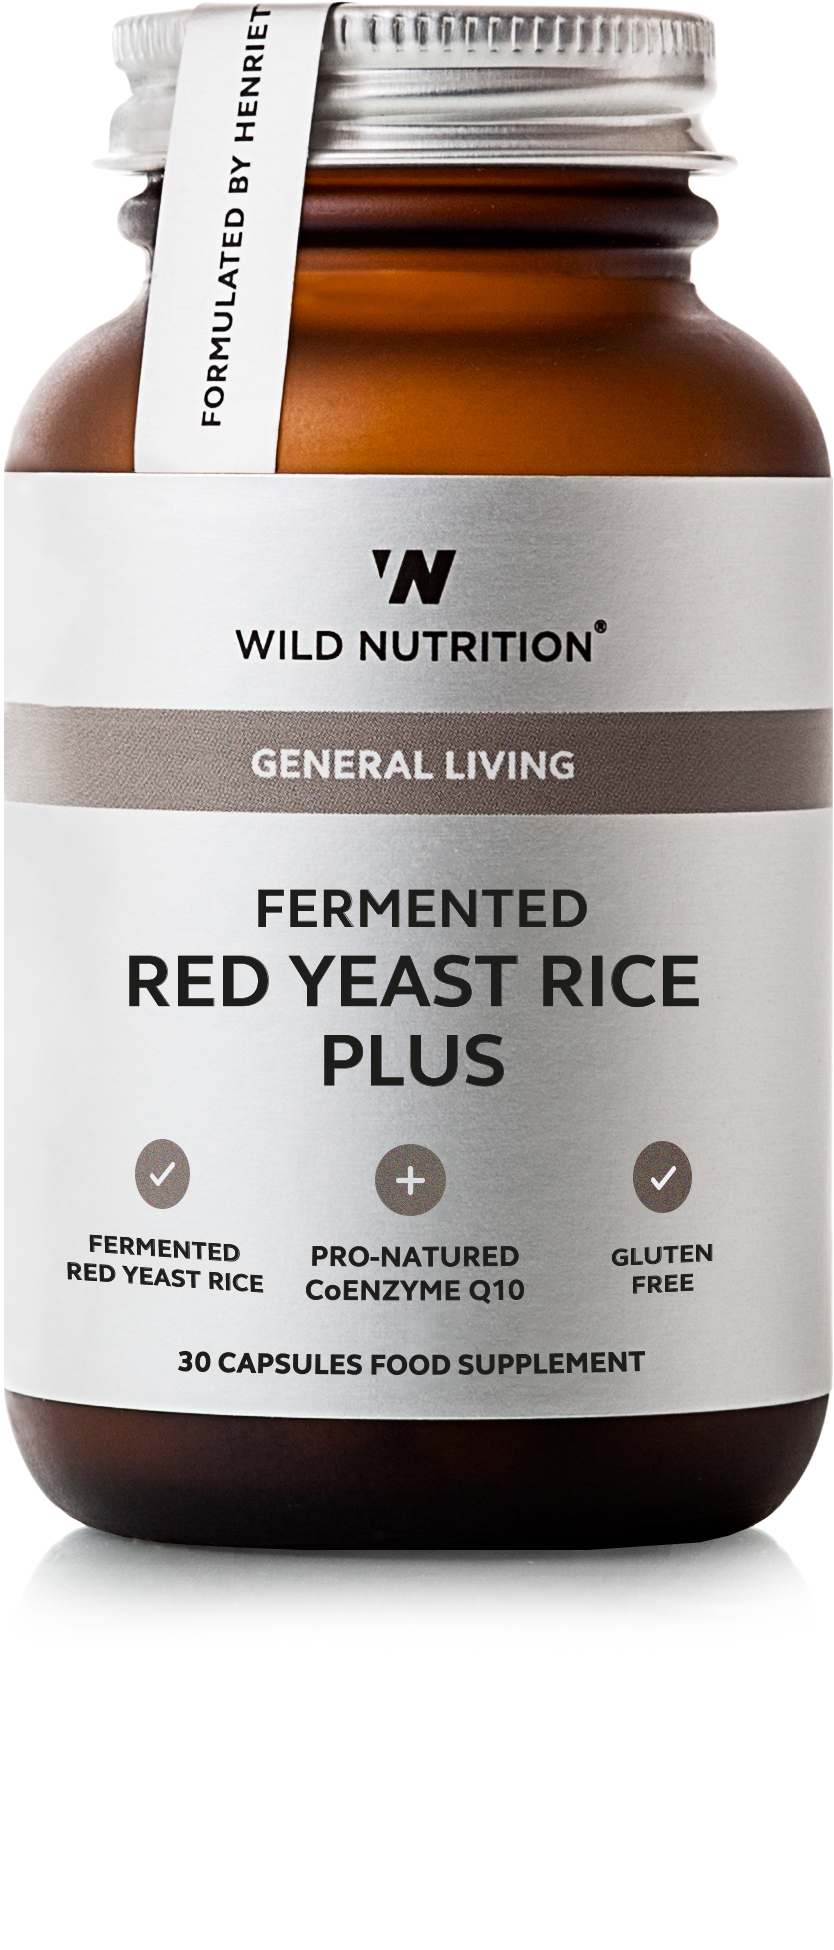 General Living Red Yeast Rice Plus 30's